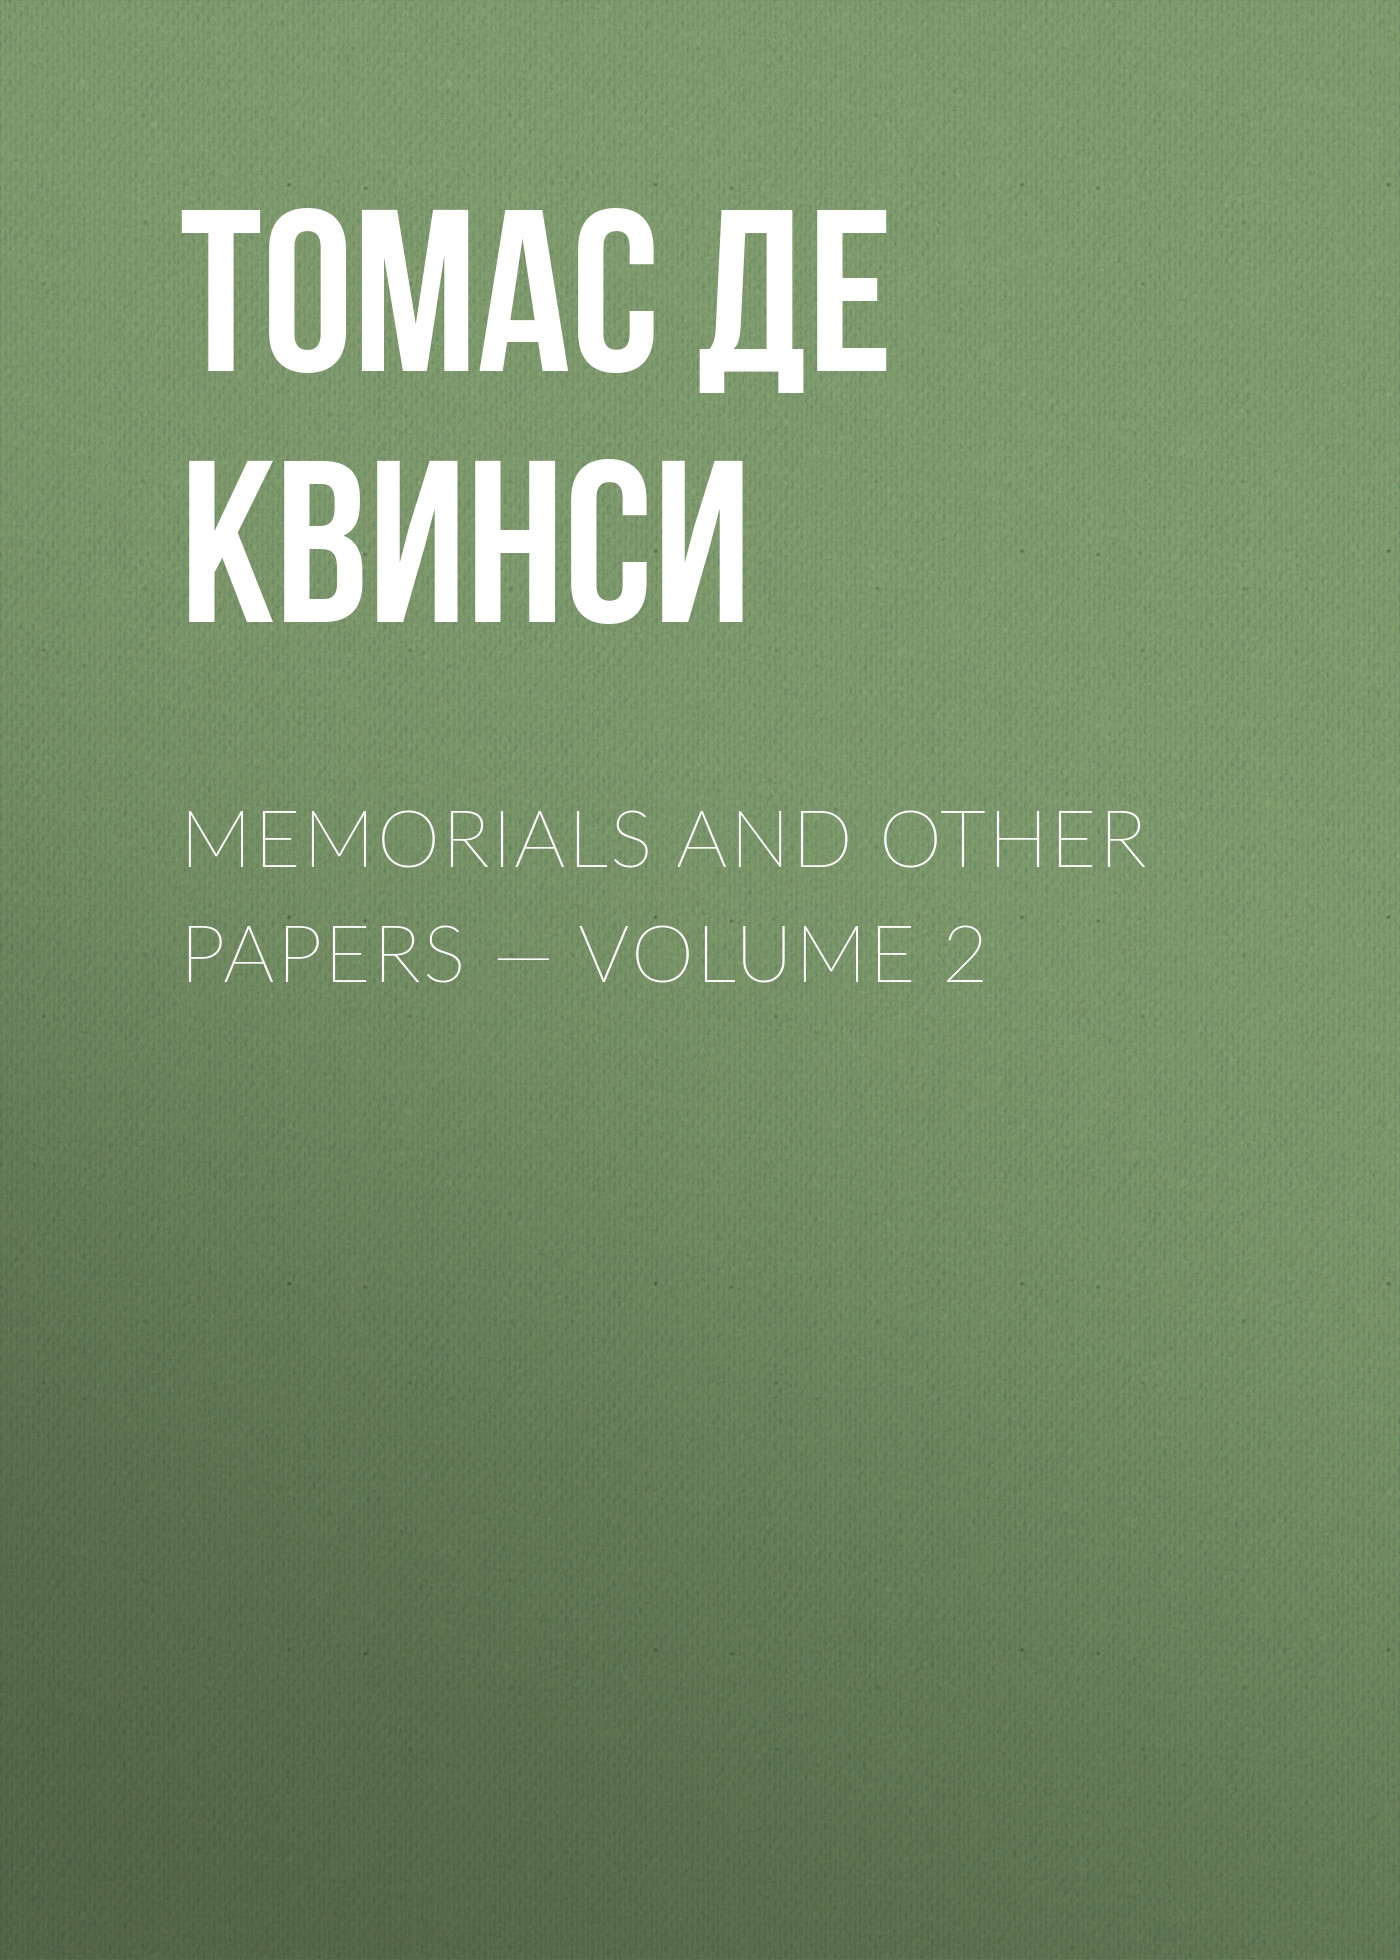 Фото - Томас де Квинси Memorials and Other Papers — Volume 2 j b mozley lectures and other theological papers